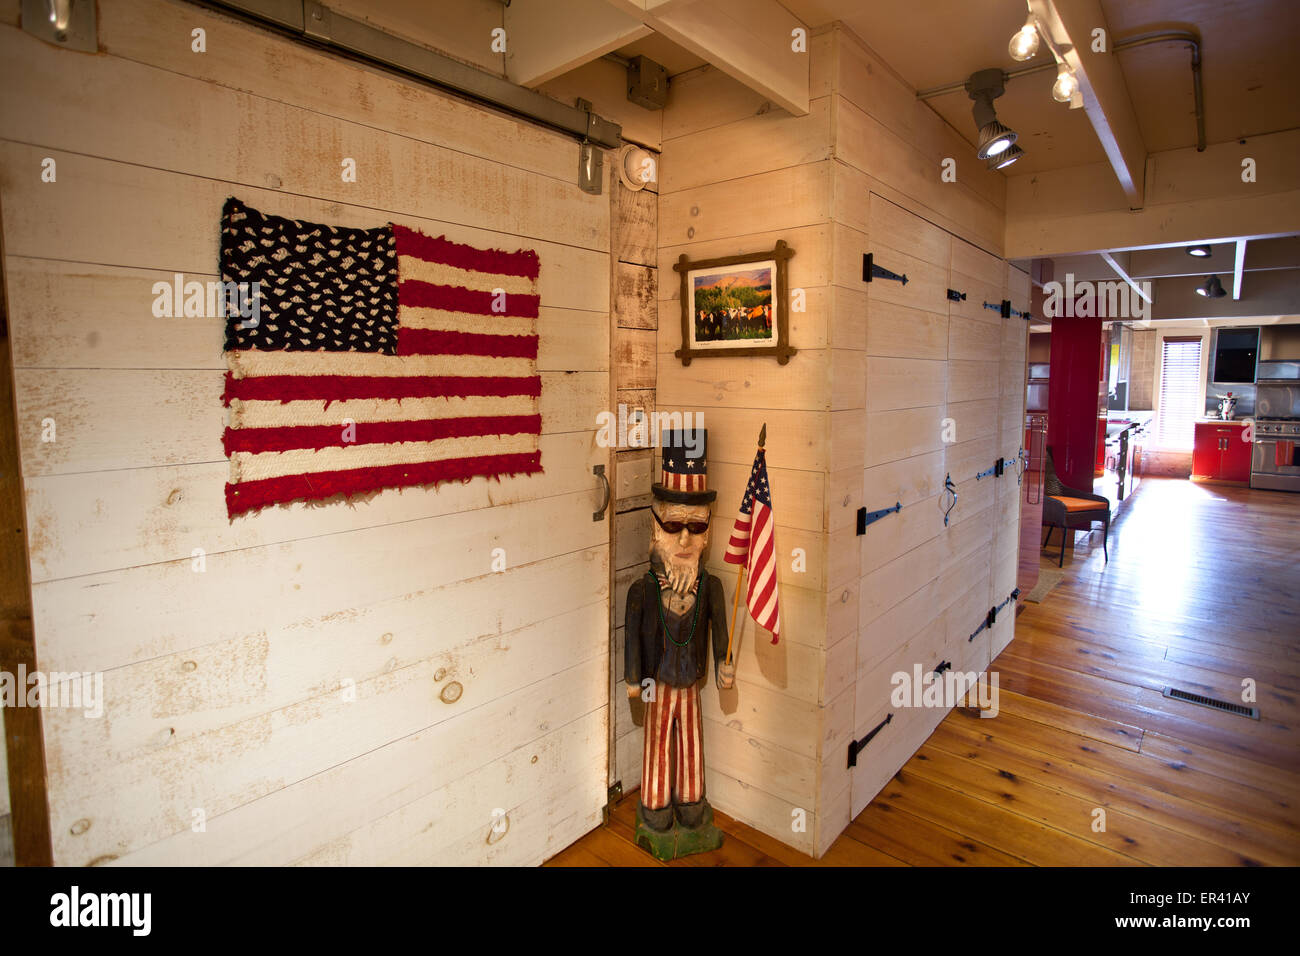 Interior detail. Vermont dairy barn renovated into a unique home featuring folk art decor. - Stock Image